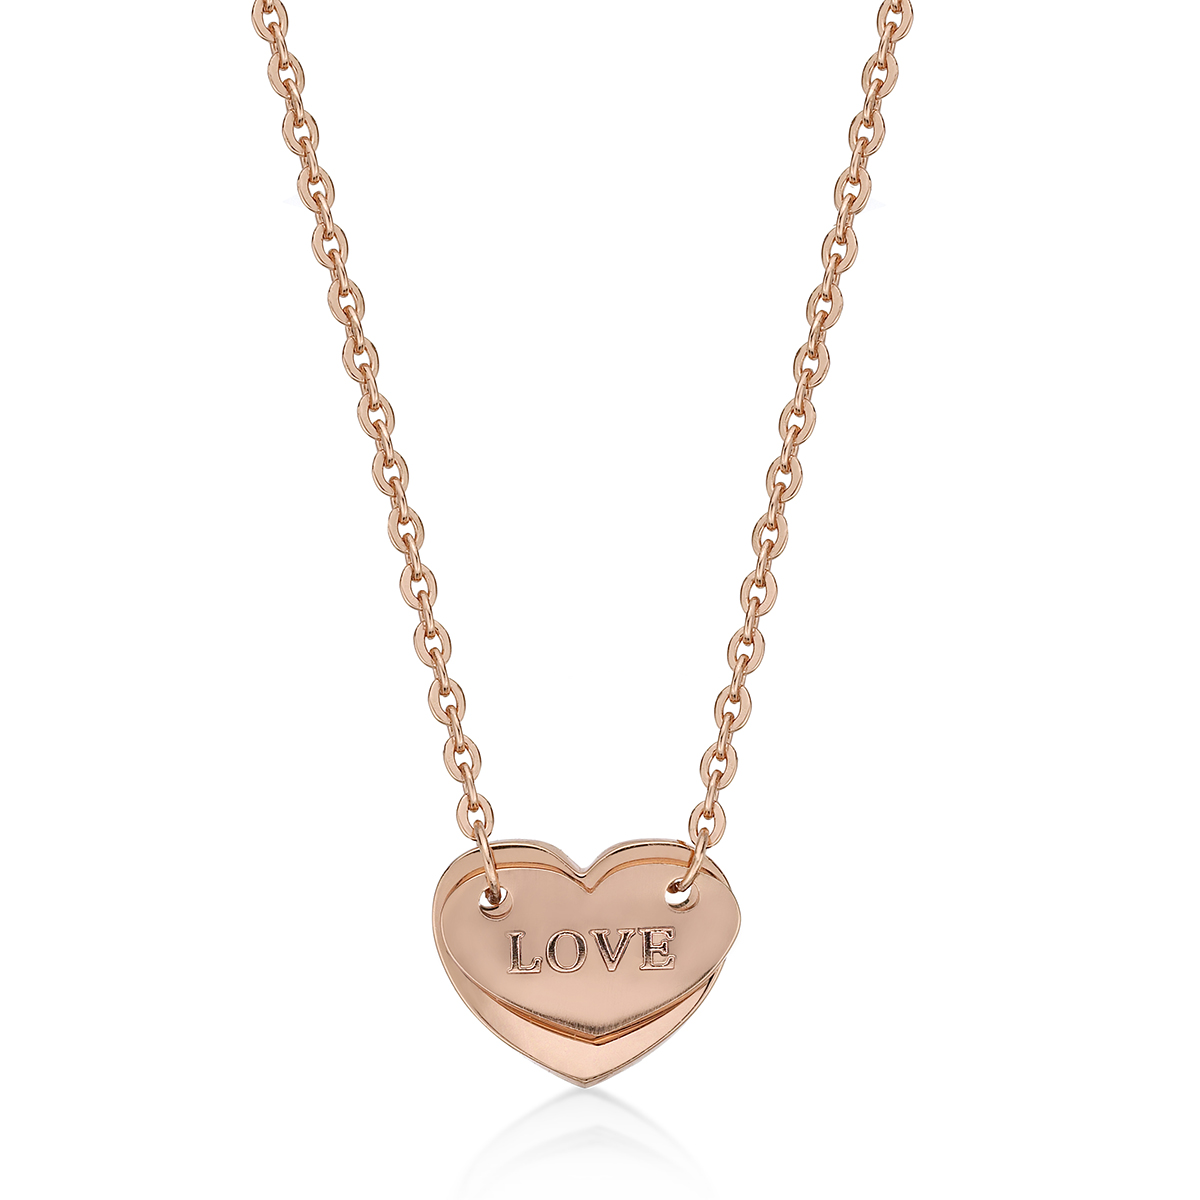 14K Rose Gold Plated Heart Shaped Steel Necklace